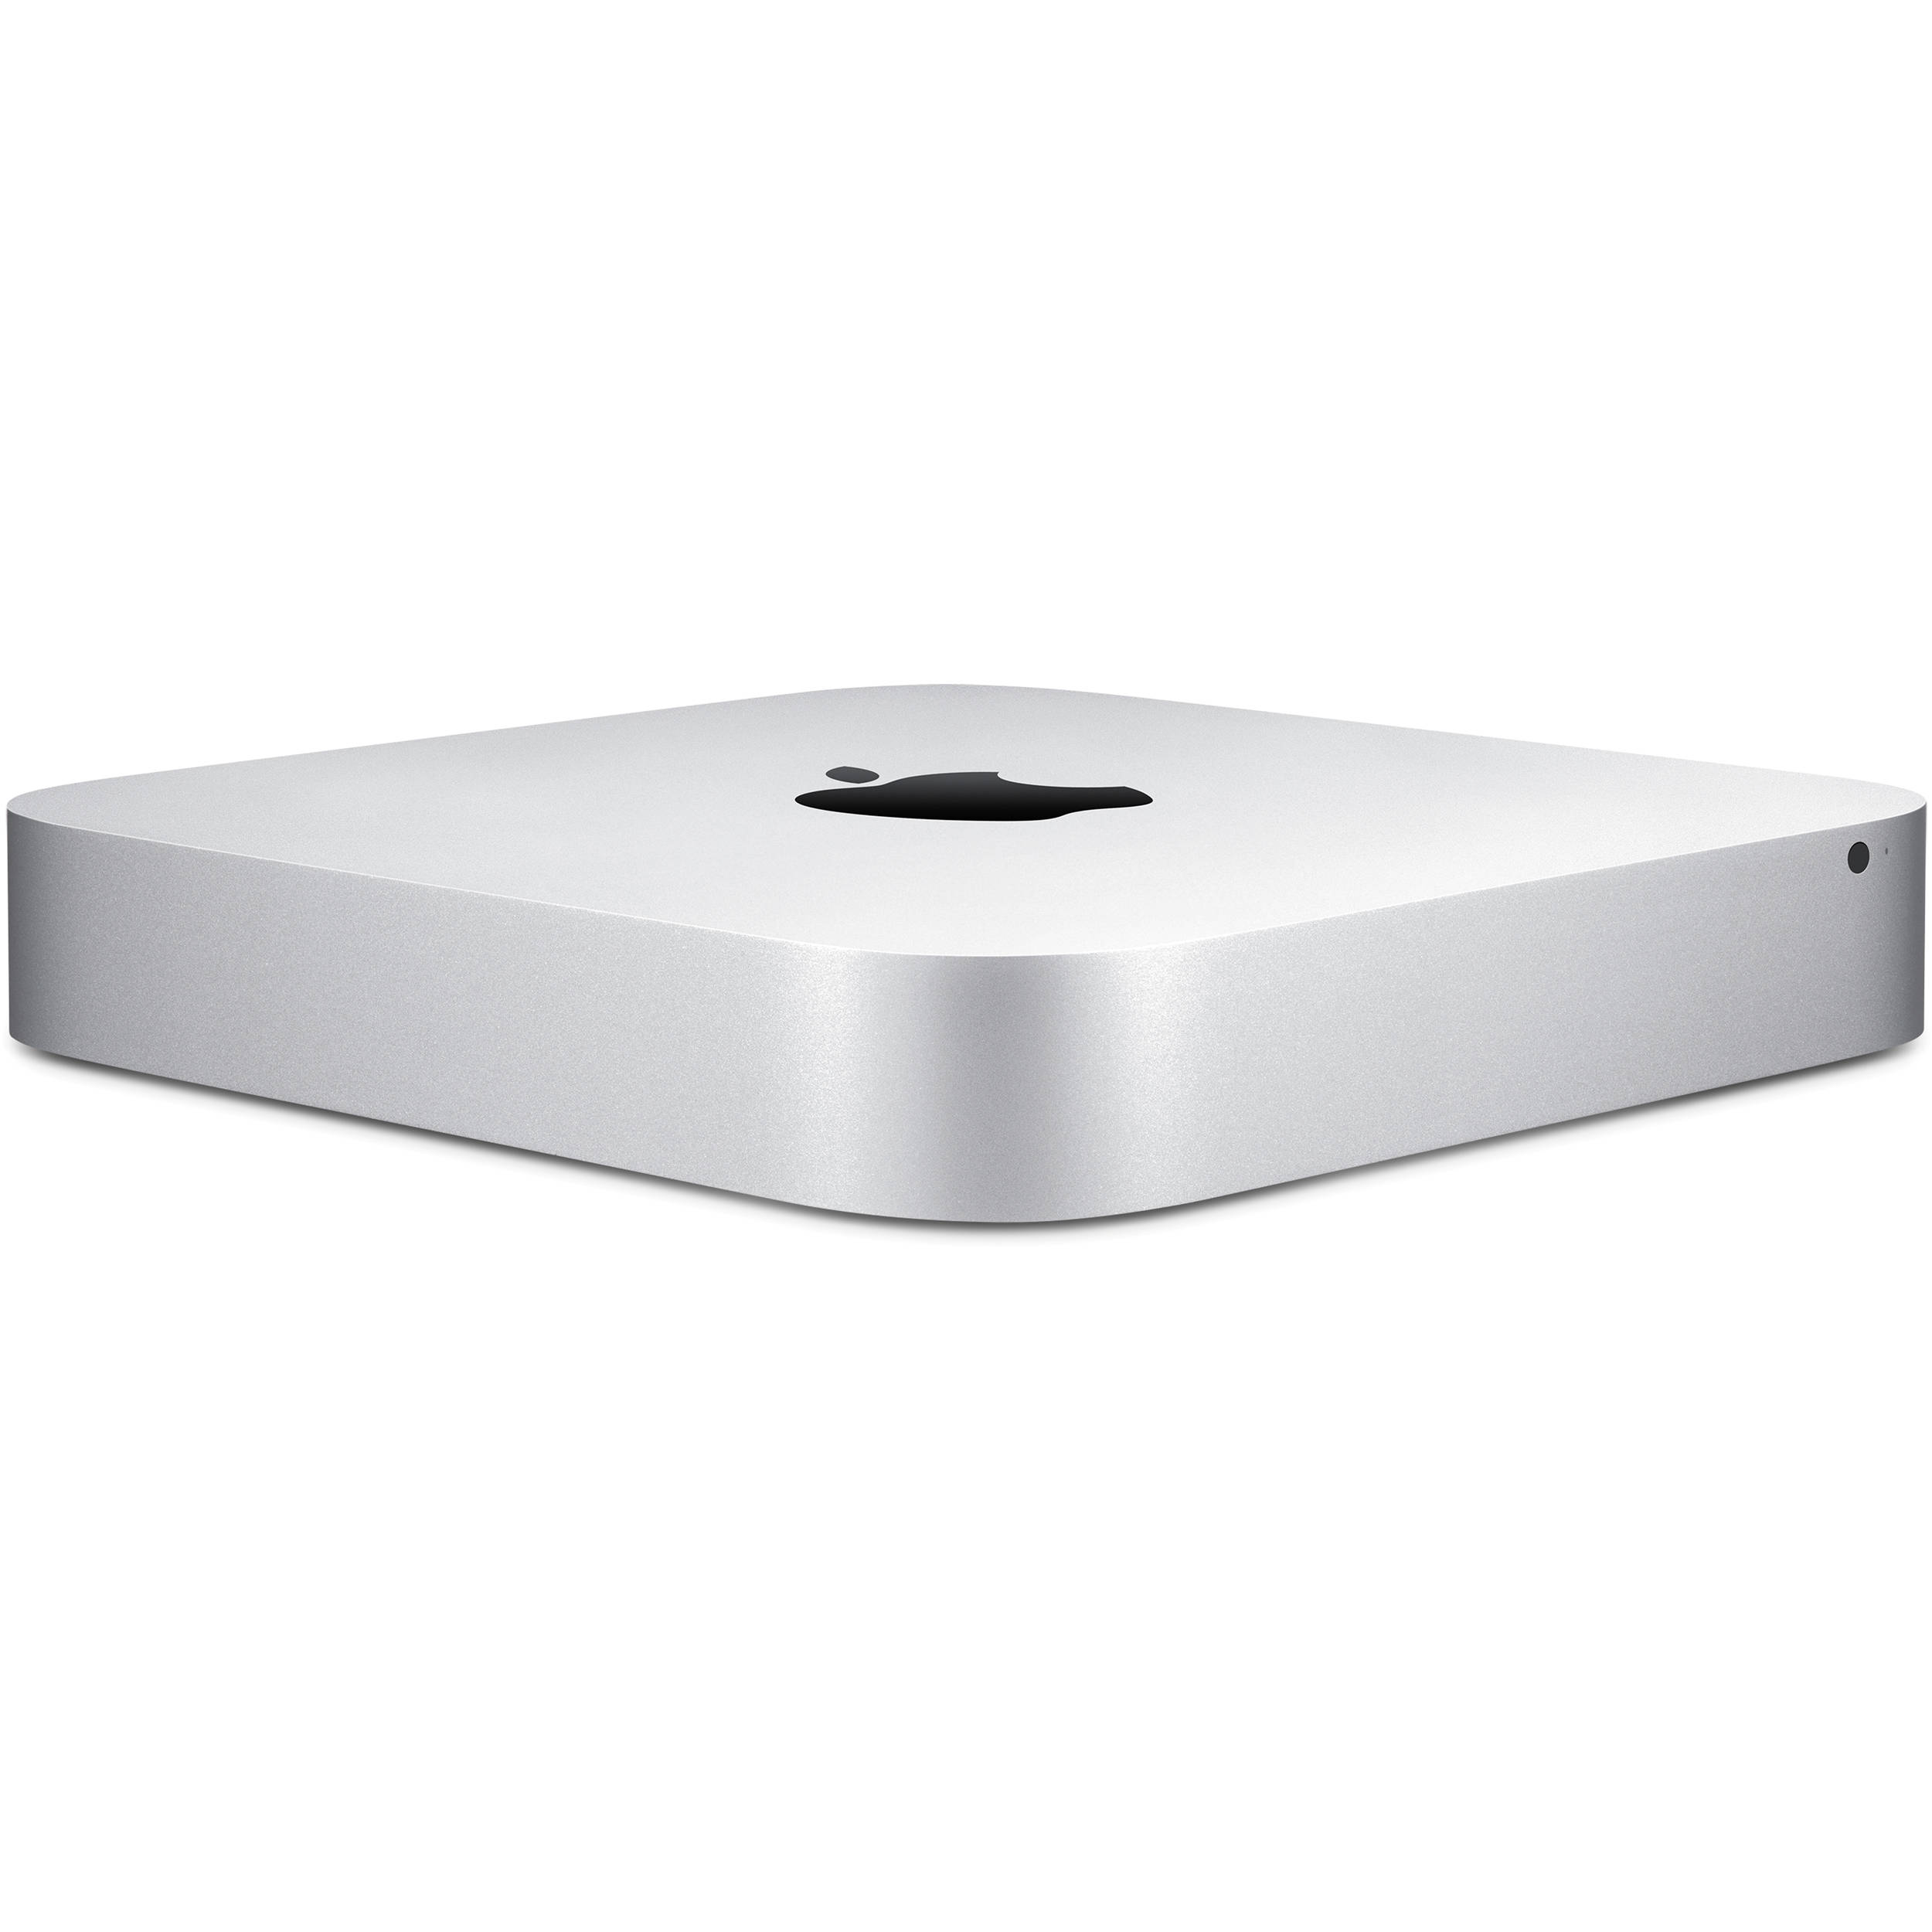 Apple Mac Mini A1347 Core i5 2.6GHz 8Gb RAM 1TB HDD MGEN2LL/A